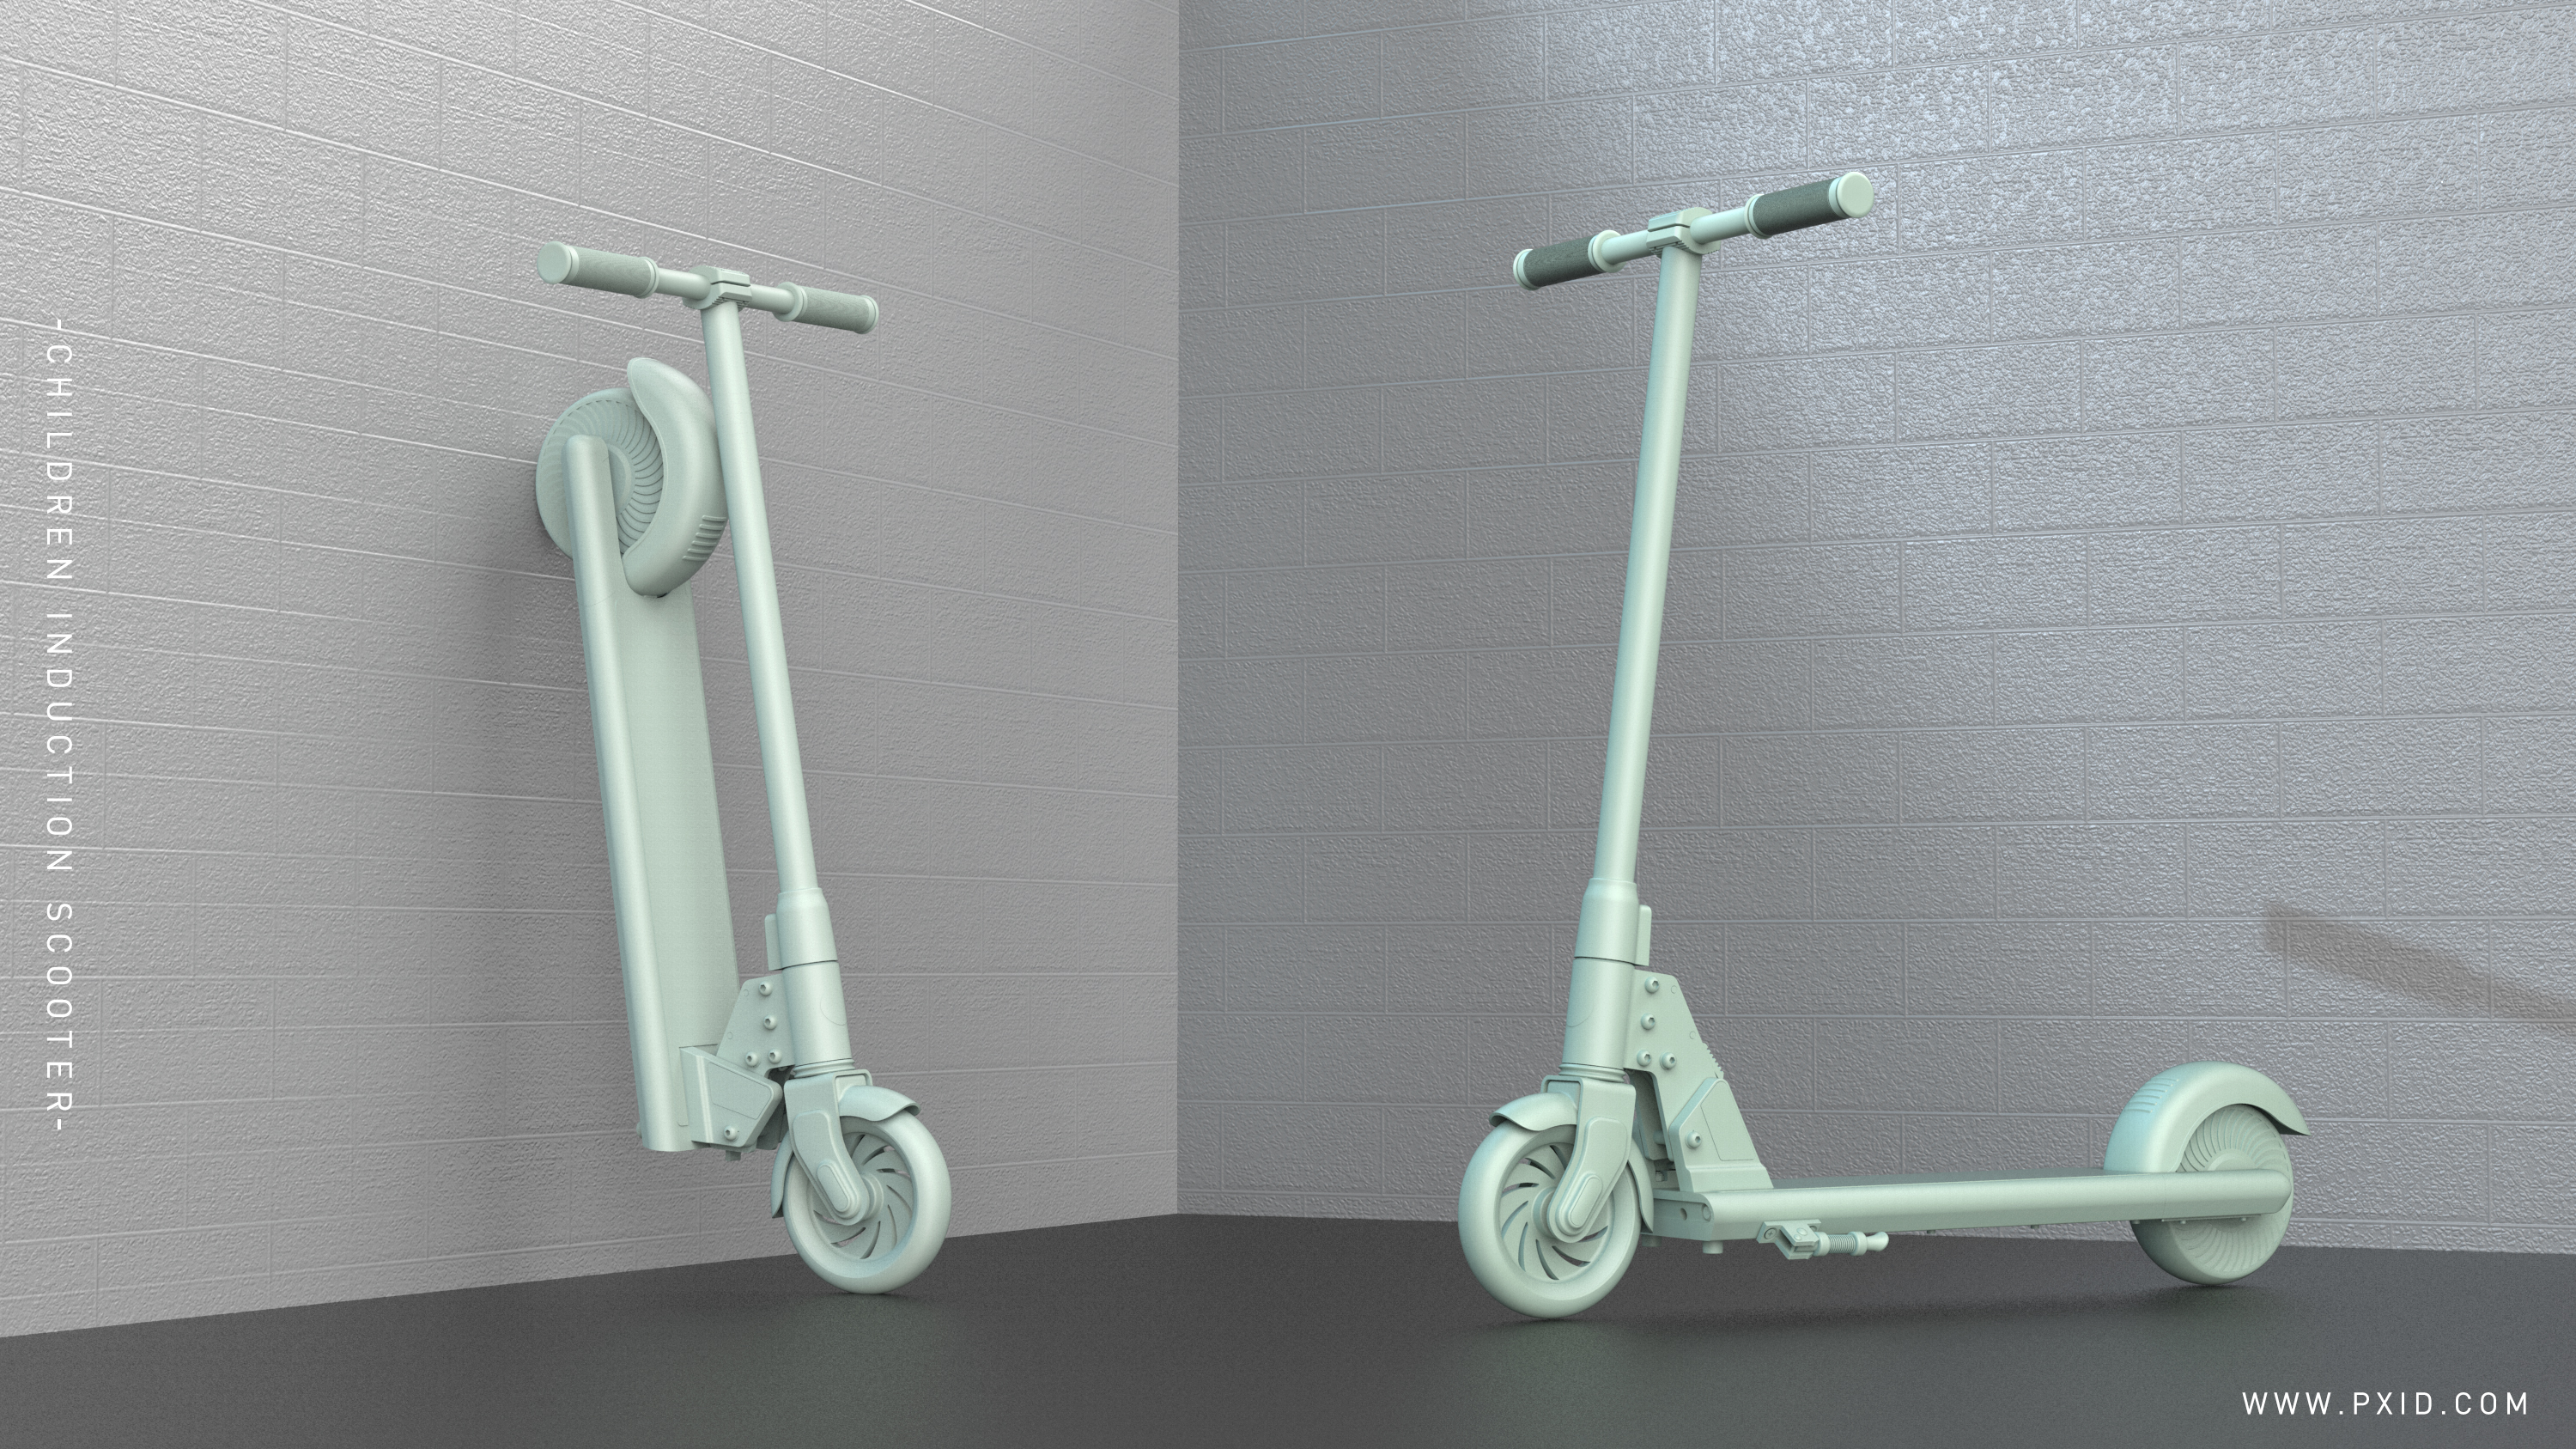 The design of new children's electric scooter designed by PXID